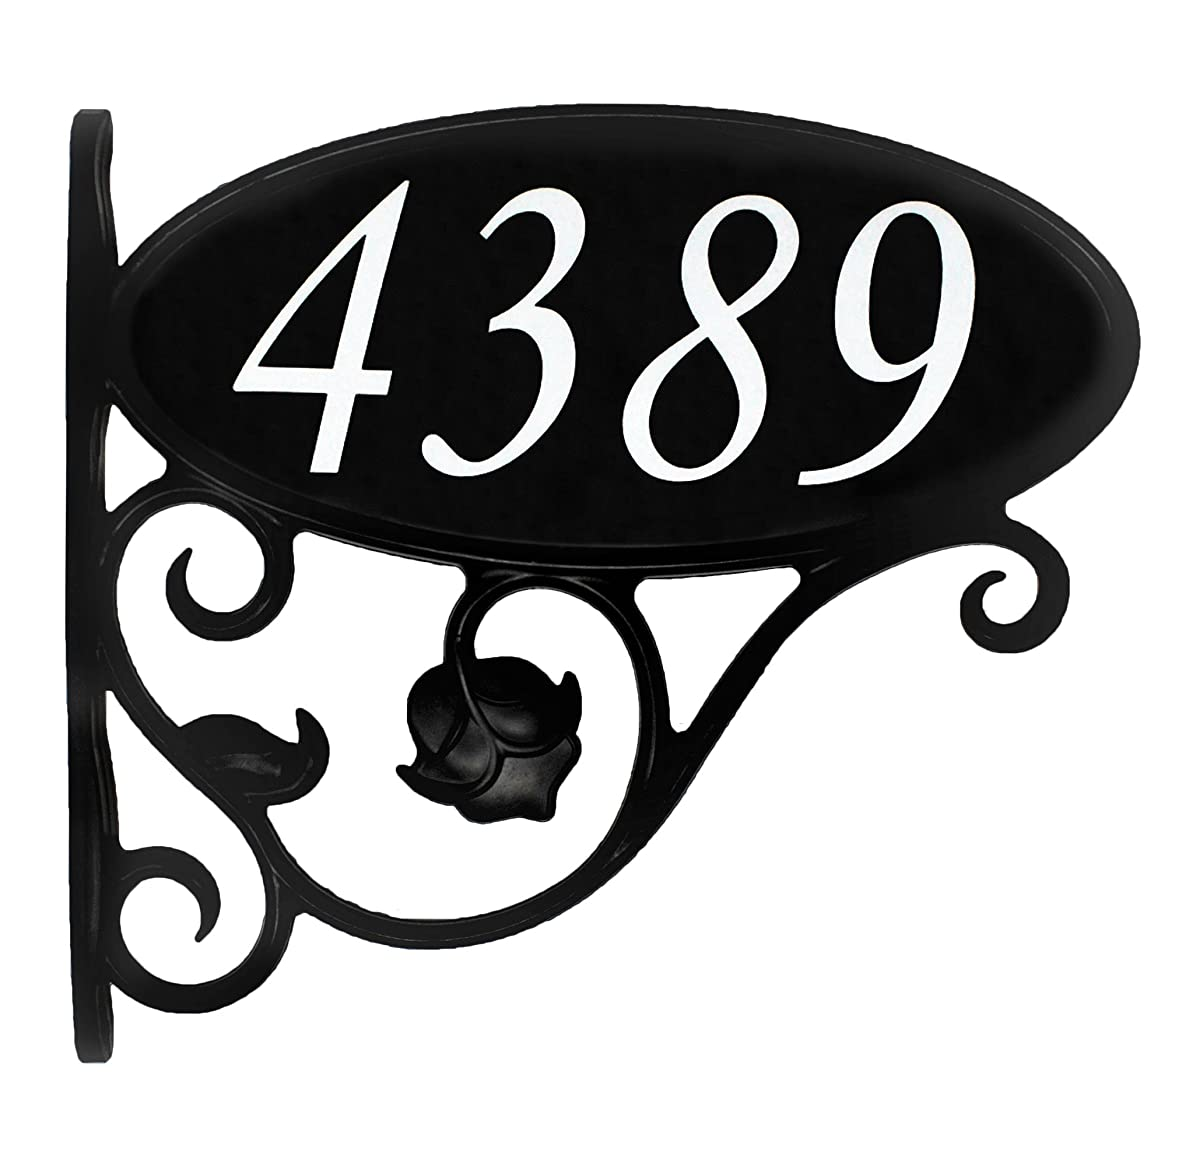 "USA Hand-Crafted Custom Made Double Sided Park Place Super Reflective Mailbox Address Sign - Large 4"" Easy to Read Numbers"